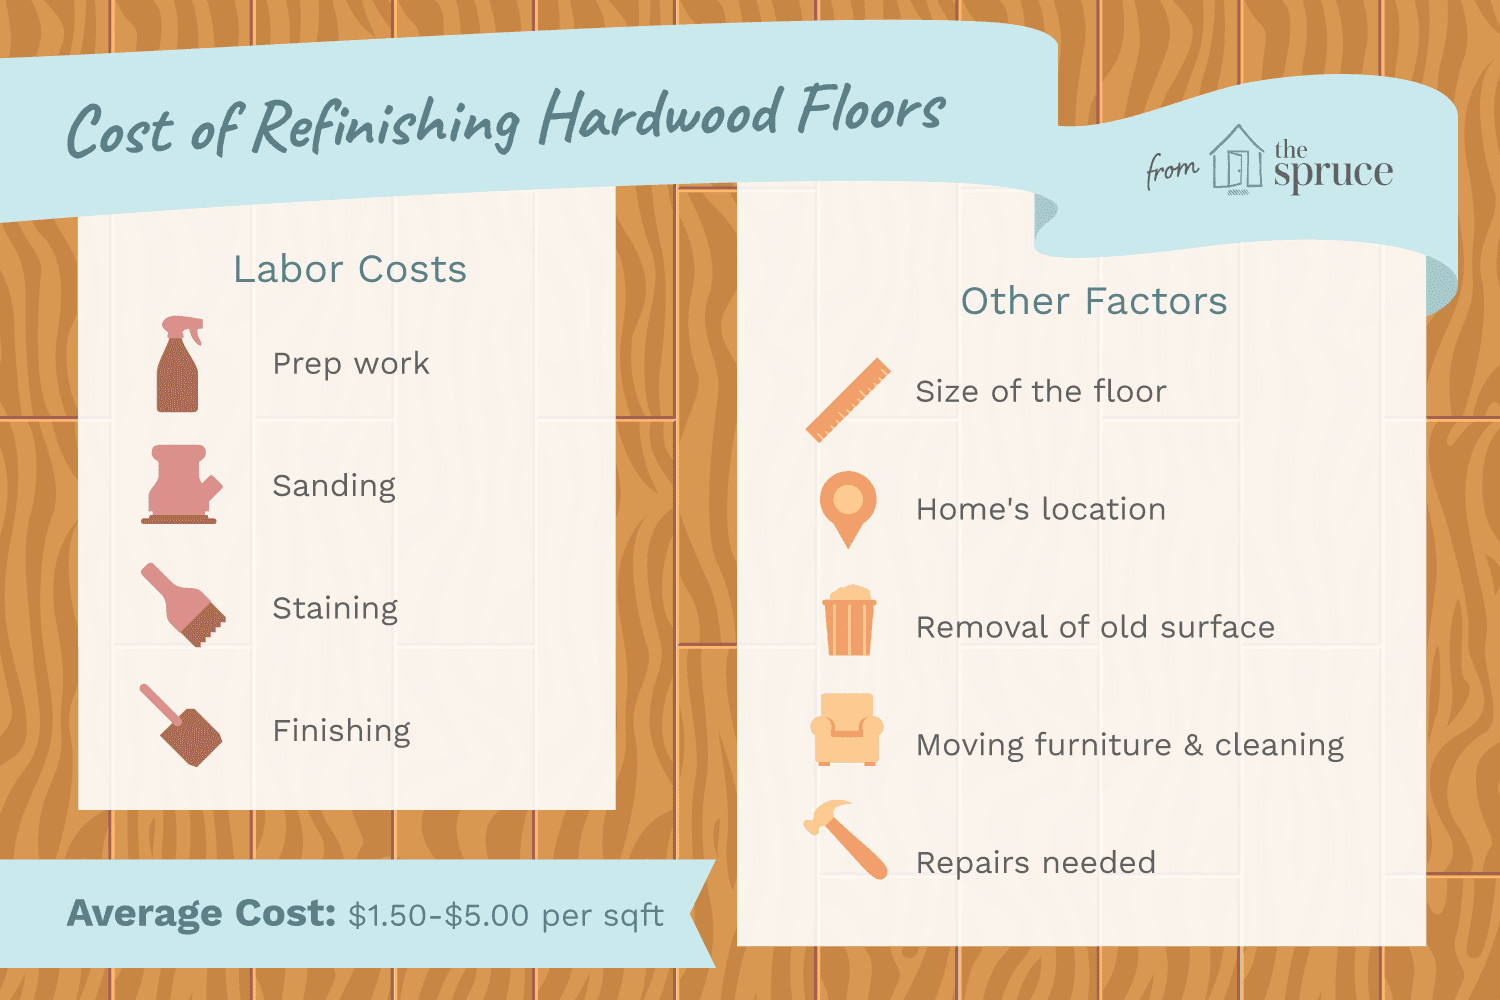 how much does it cost for hardwood floors 1500 sf of the cost to refinish hardwood floors with regard to cost to refinish hardwood floors 1314853 final 5bb6259346e0fb0026825ce2